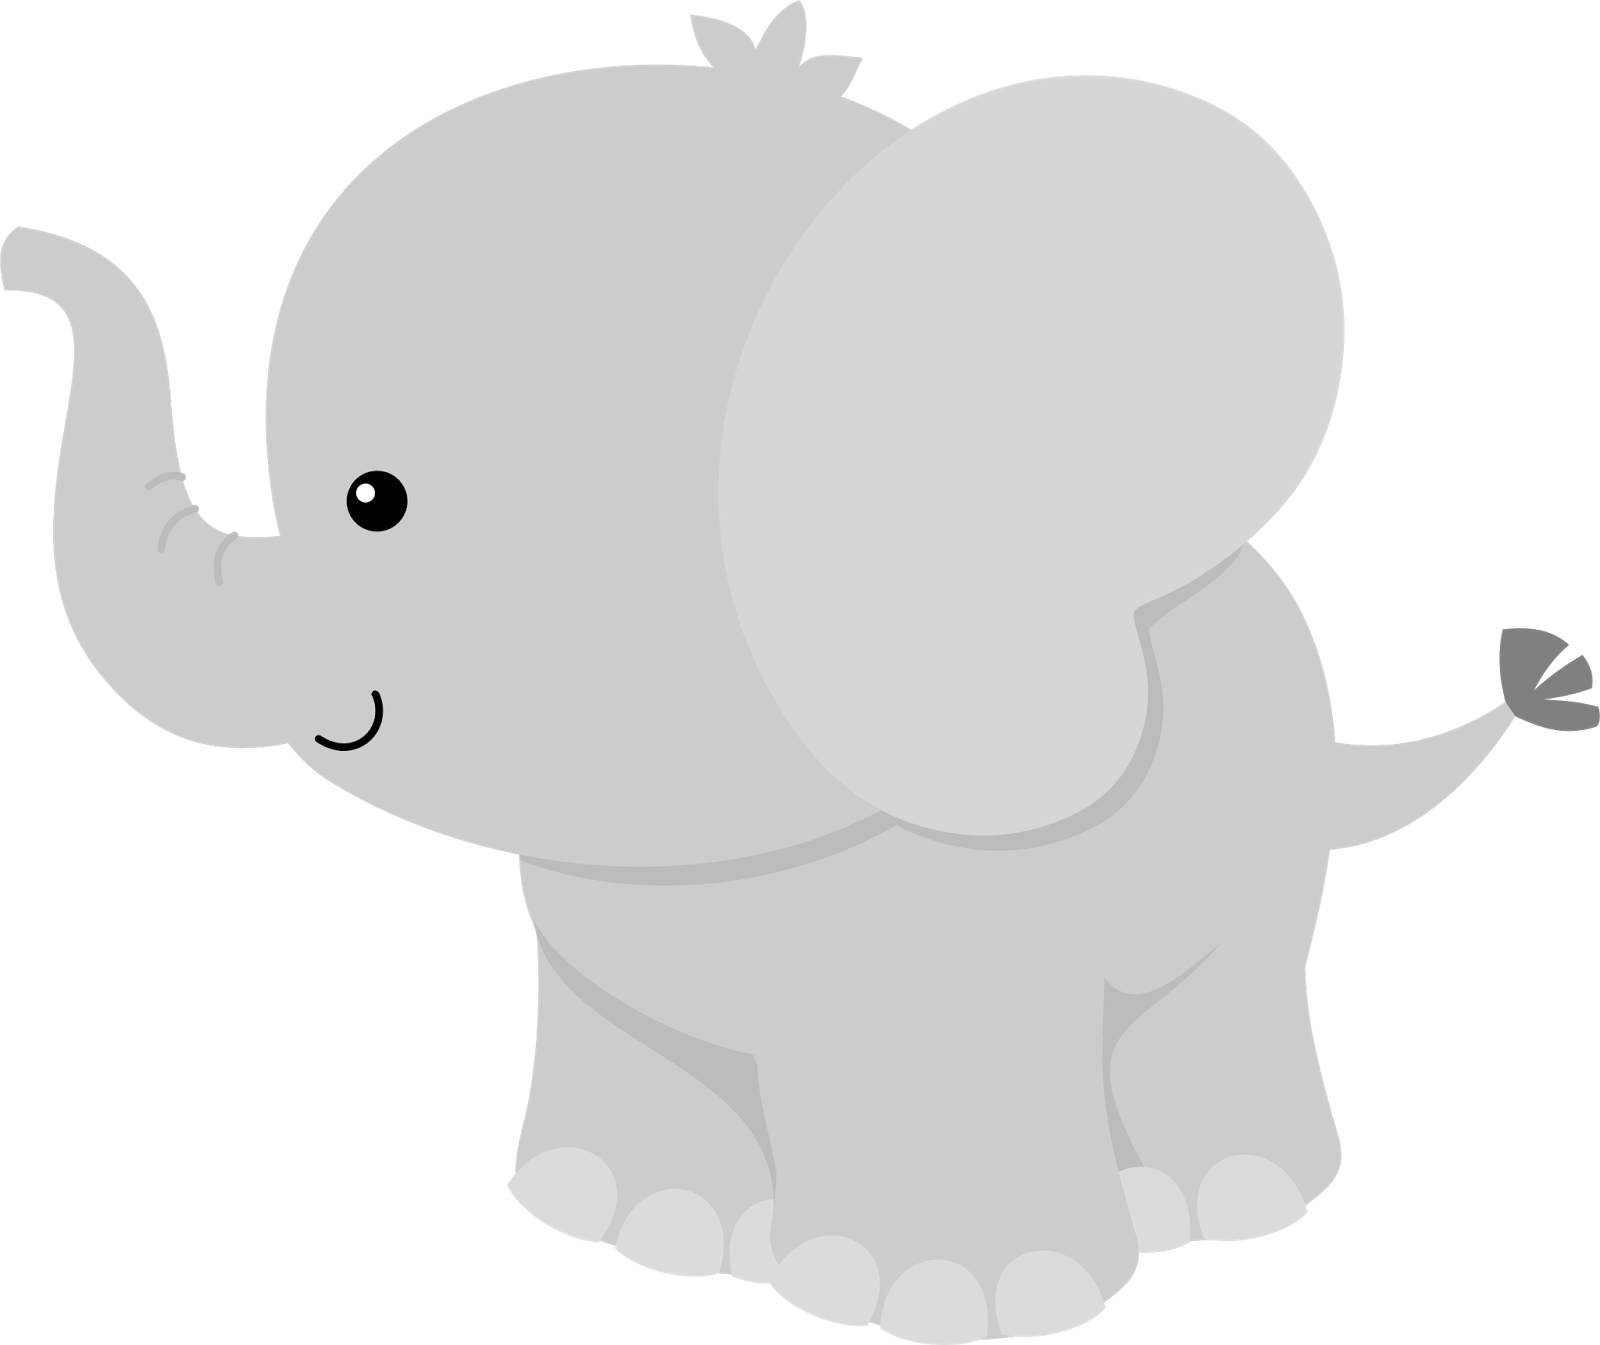 Baby elephant baby shower png. Pin by lizette medina